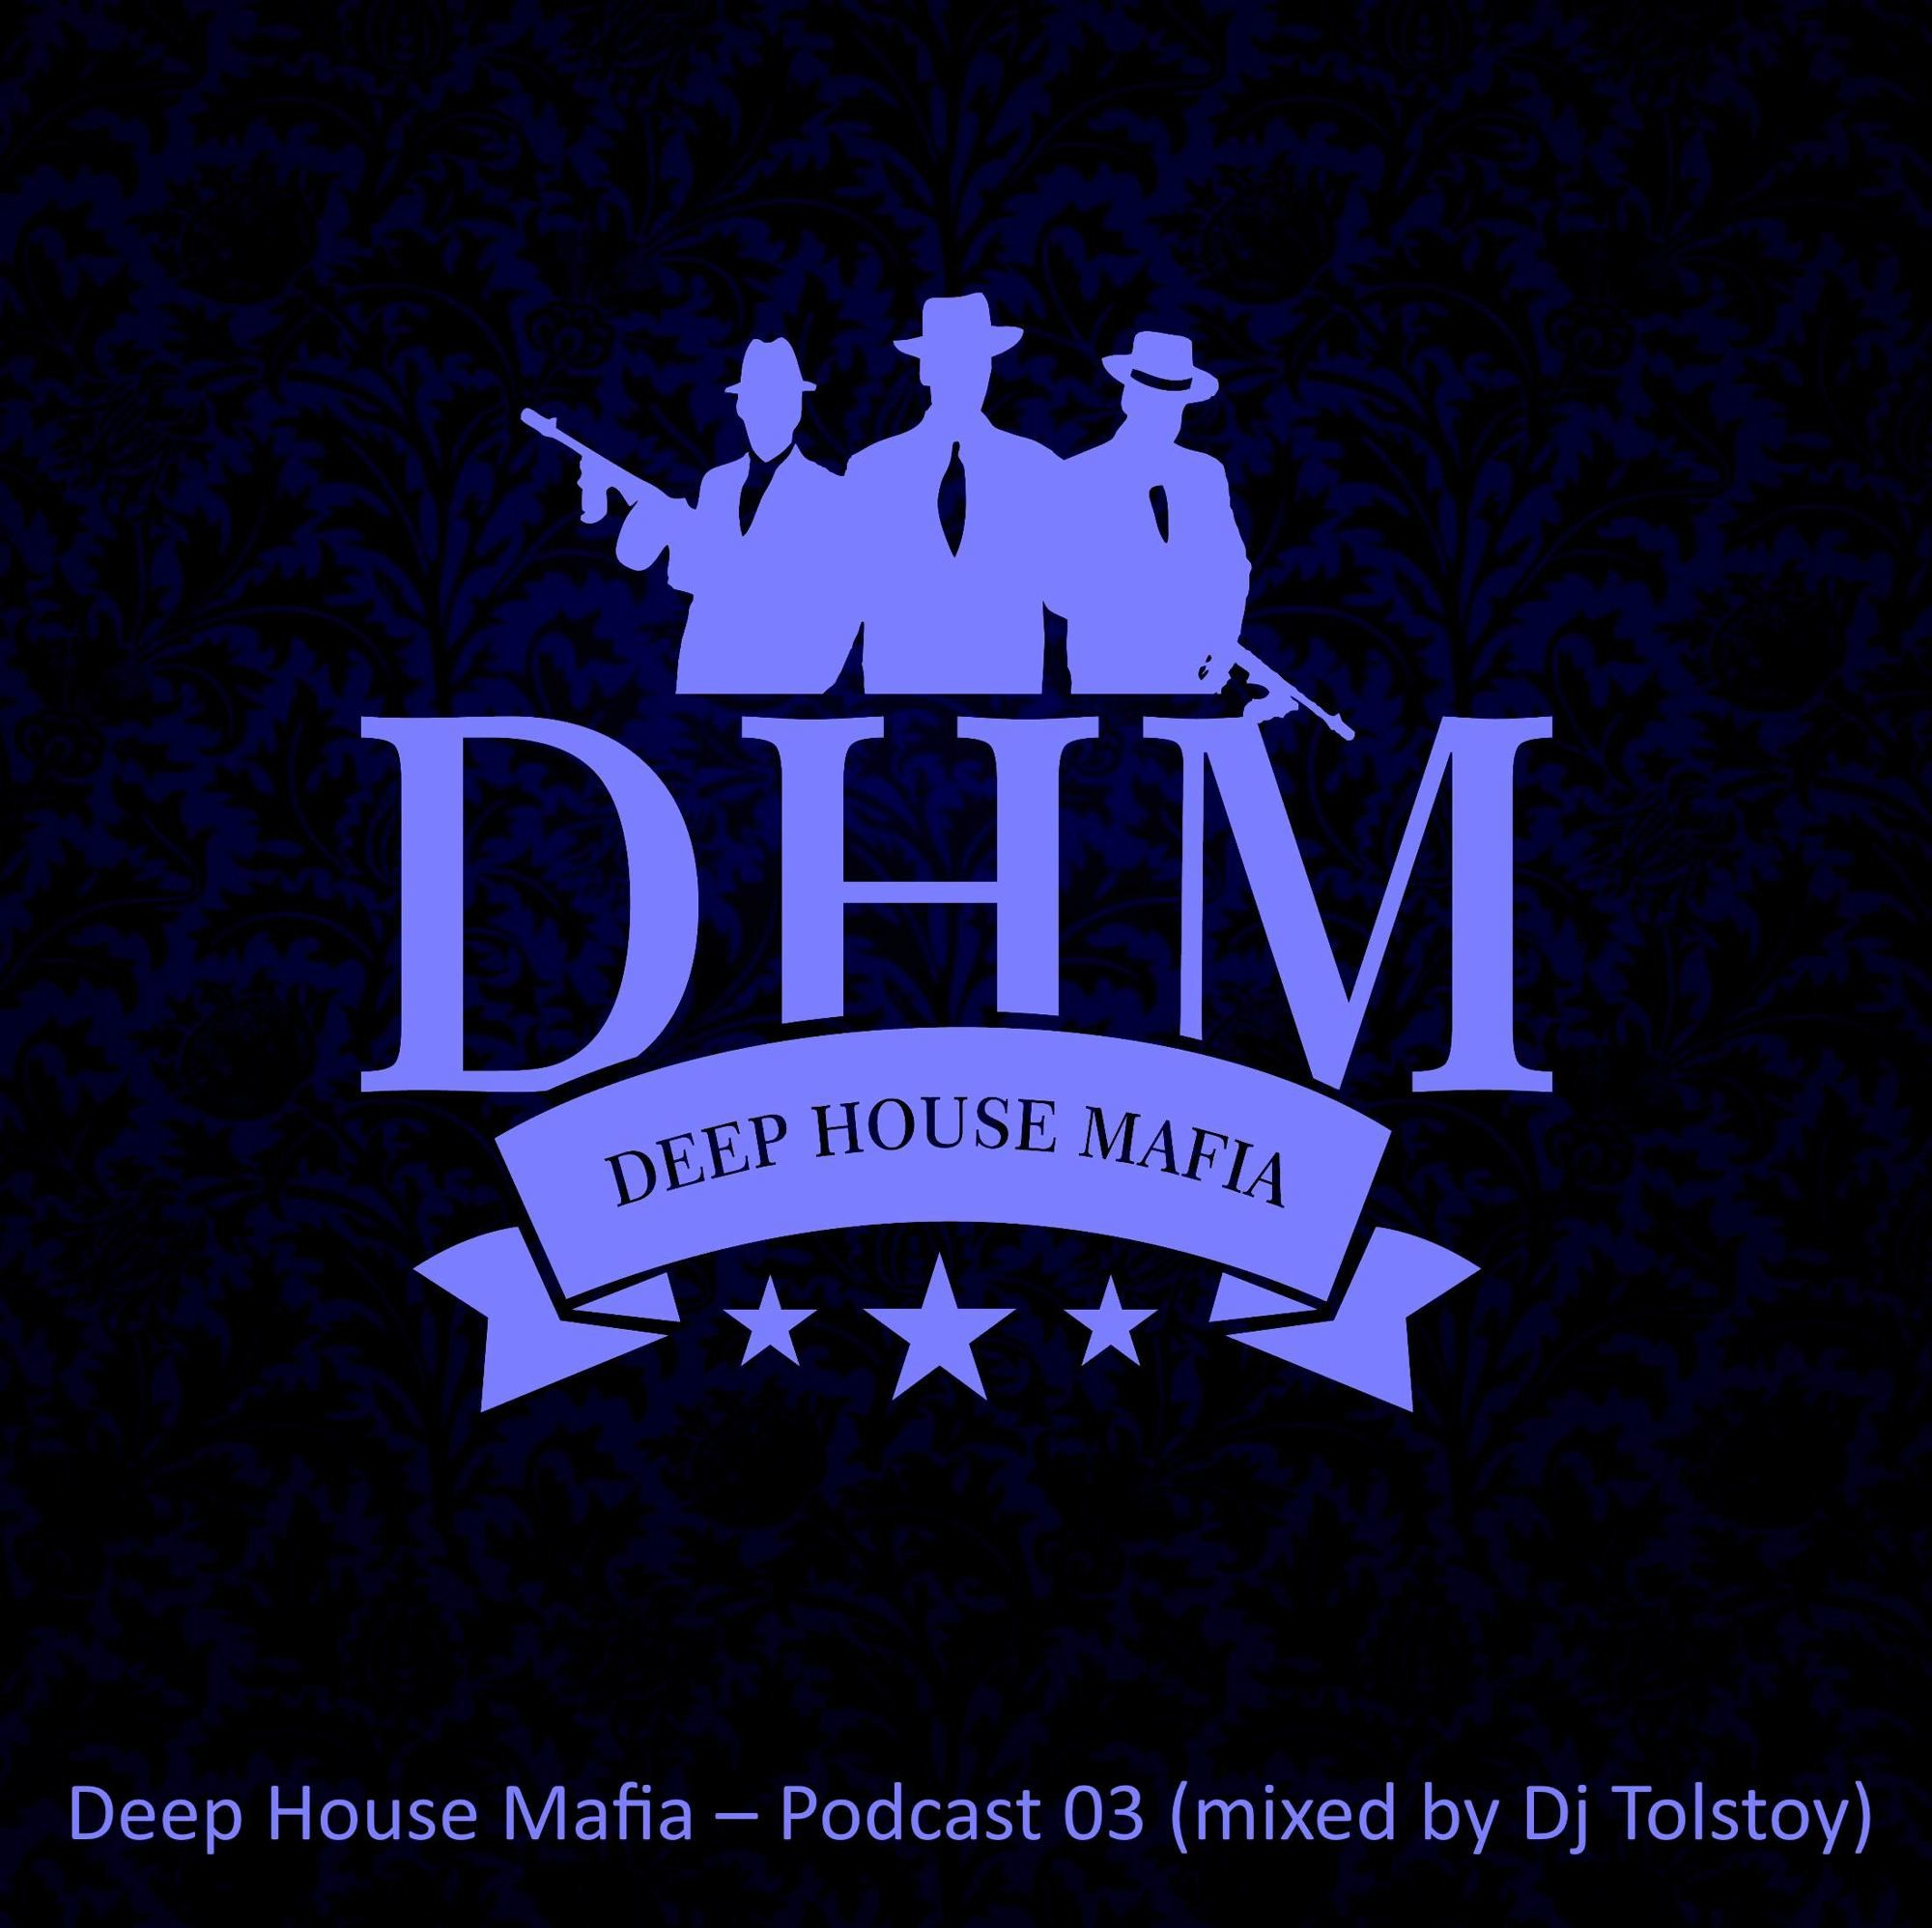 Deep house mafia podcast 03 mixed by dj tolstoy for House music podcast